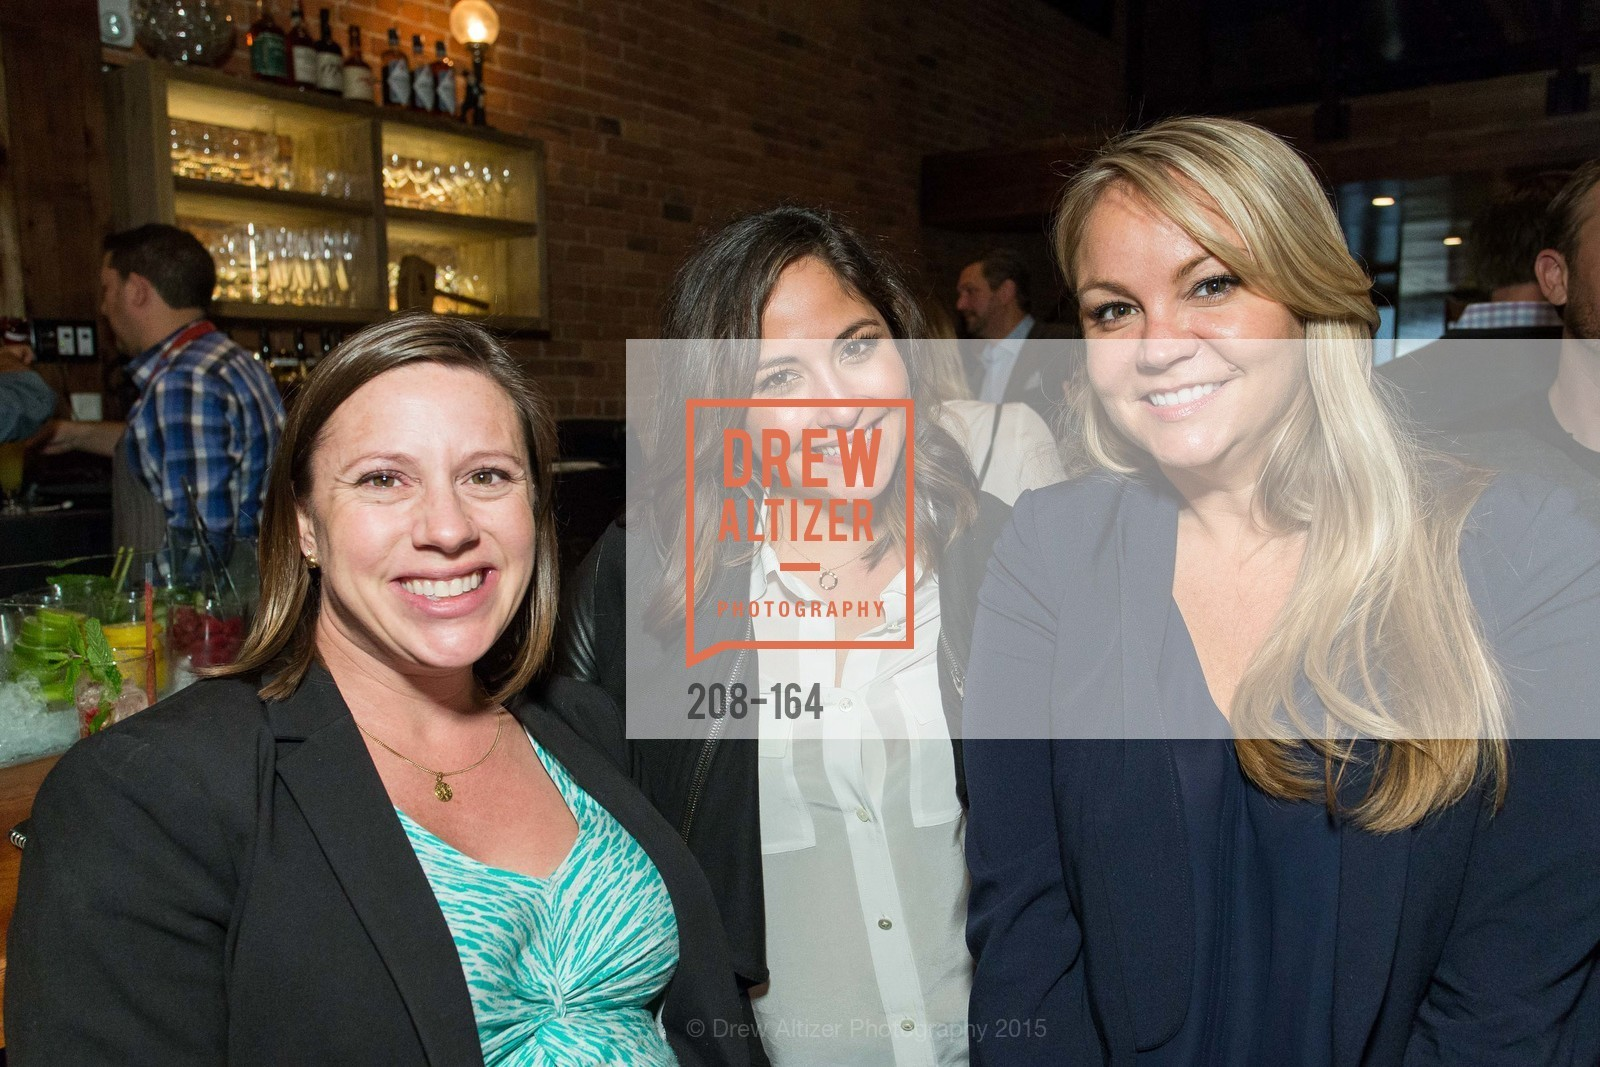 Nicole O'neill, Alexis Doctolero, Erin Egleston, Forgery Bar Opening Celebration, Forgery Bar. 152 Mission St, June 14th, 2015,Drew Altizer, Drew Altizer Photography, full-service agency, private events, San Francisco photographer, photographer california